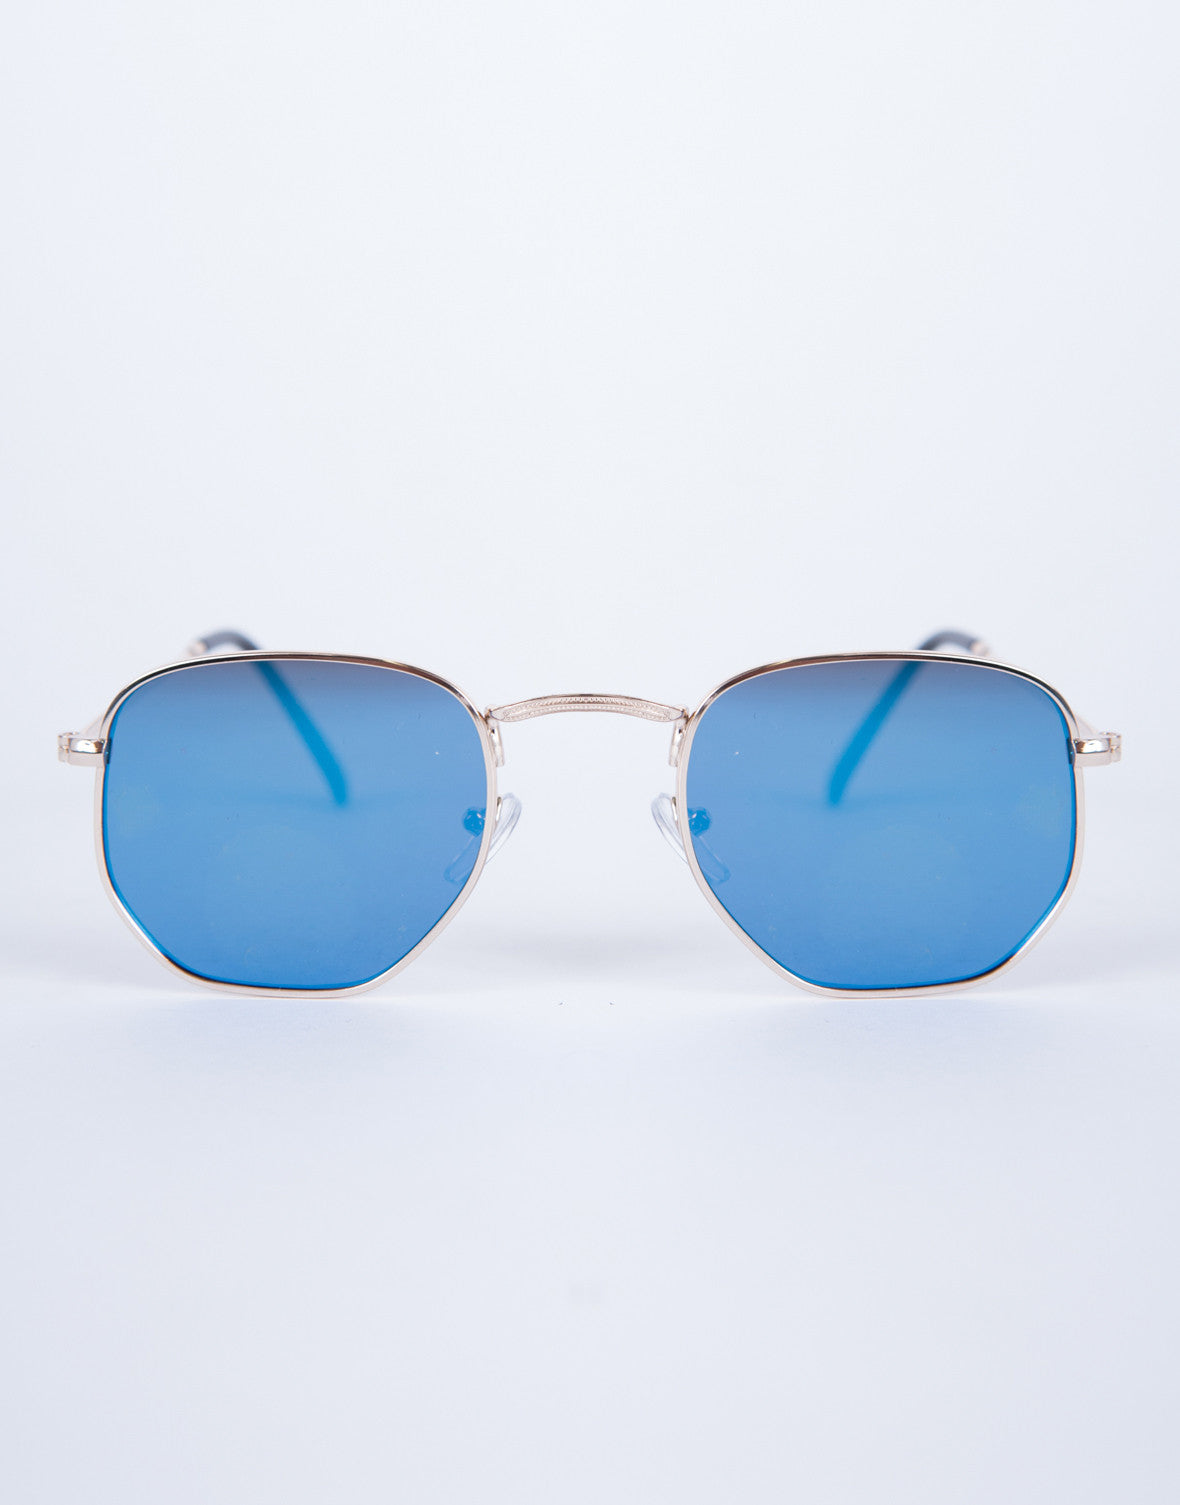 mini aviator sunglasses  Mini Colored Aviators - Thin Frame Aviators - Mirrored Aviator ...